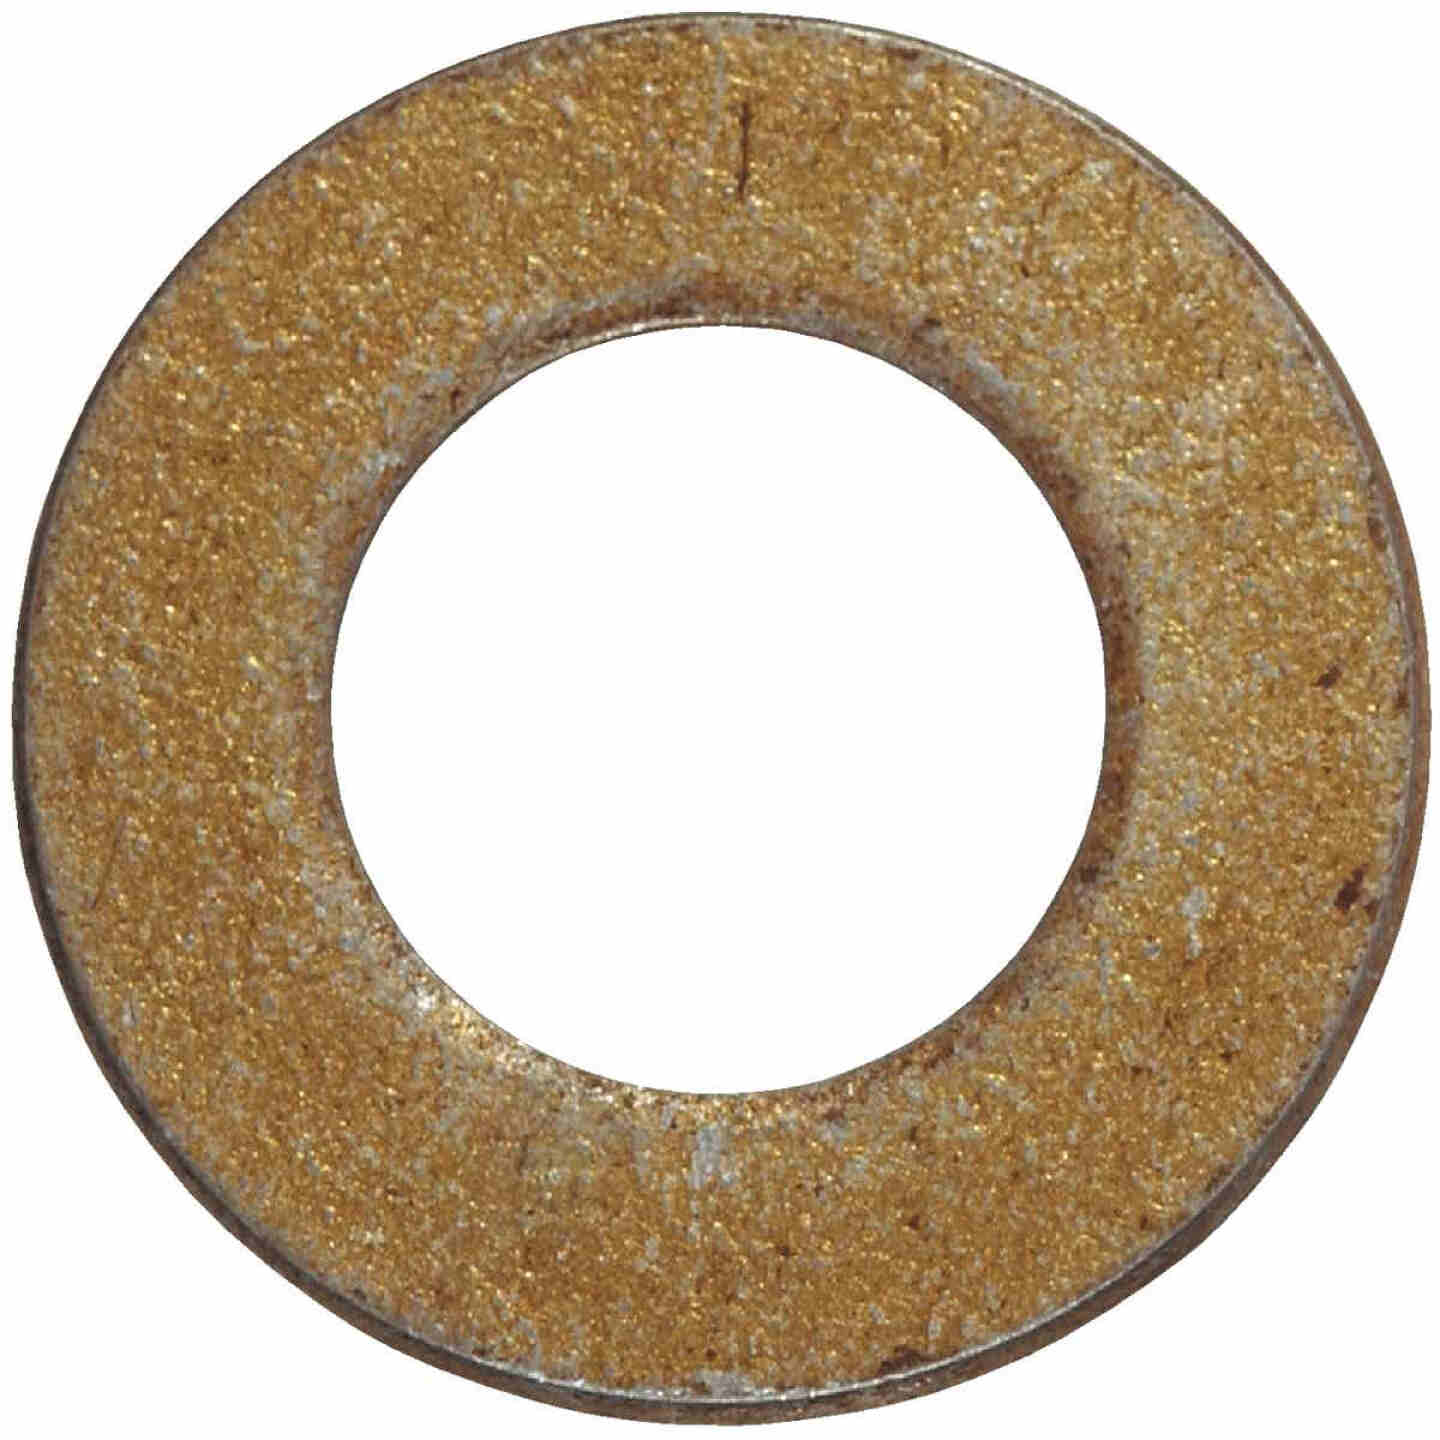 Hillman 5/16 In. SAE Hardened Steel Yellow Dichromate Flat Washer (100 Ct.) Image 1